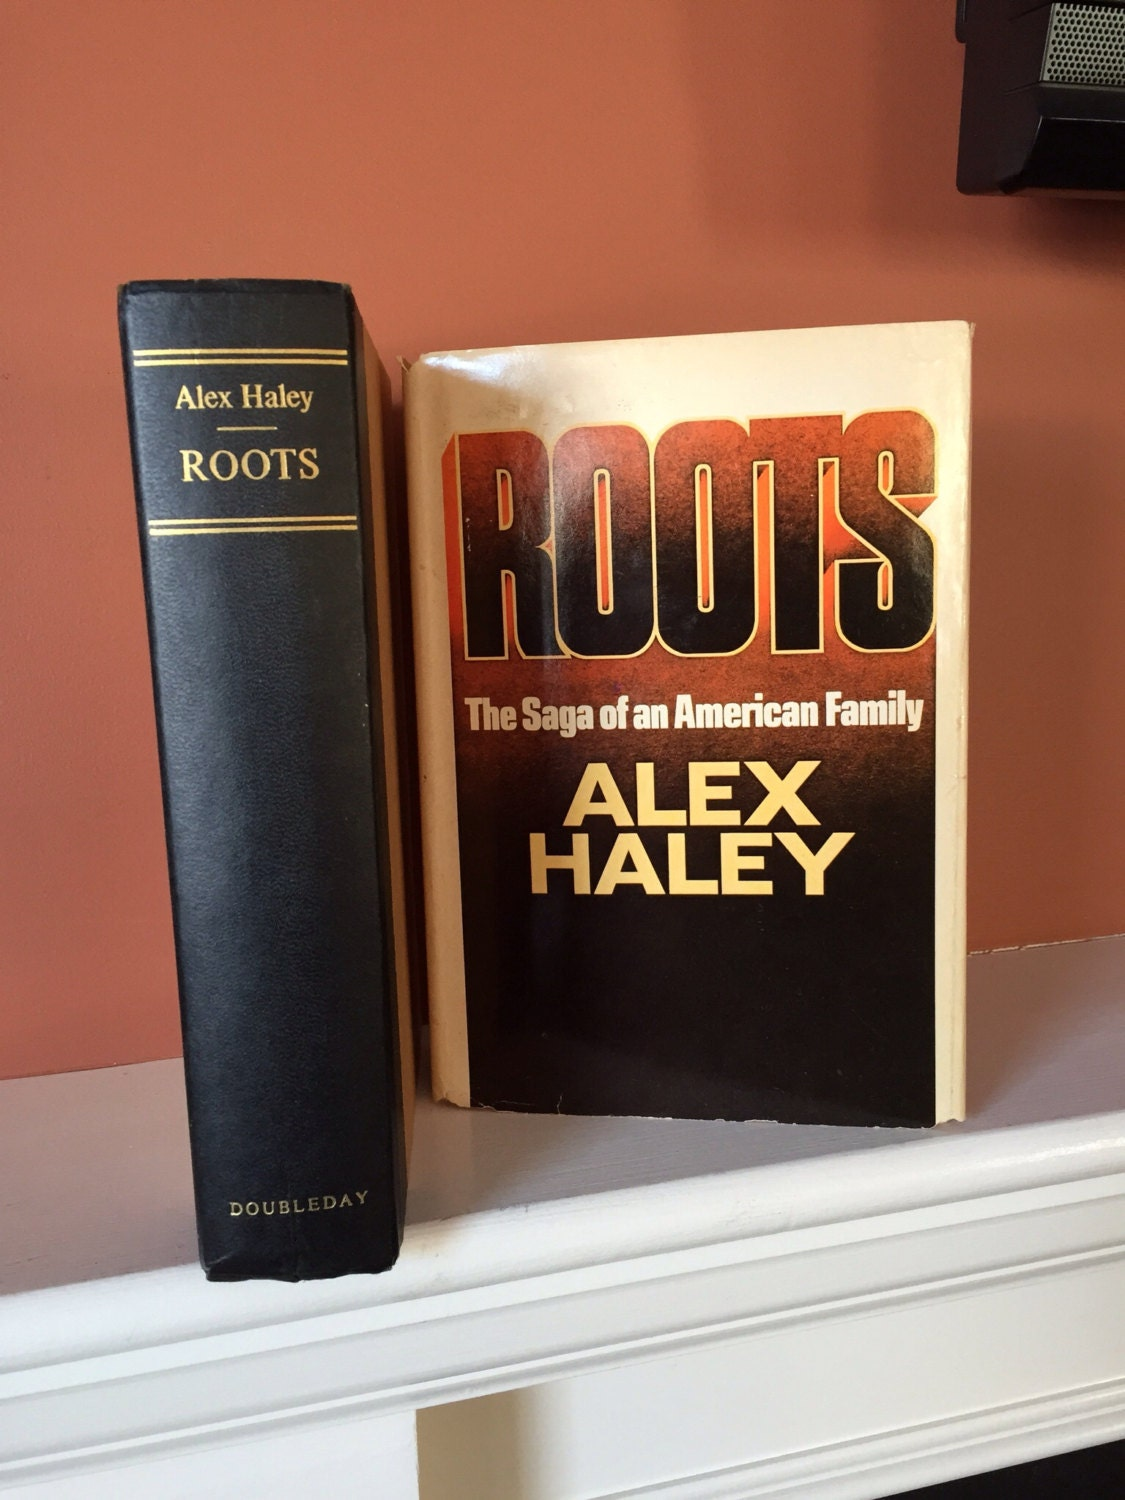 Roots The Saga Of An American Family: Roots: The Saga Of An American Family Alex Haley 1976